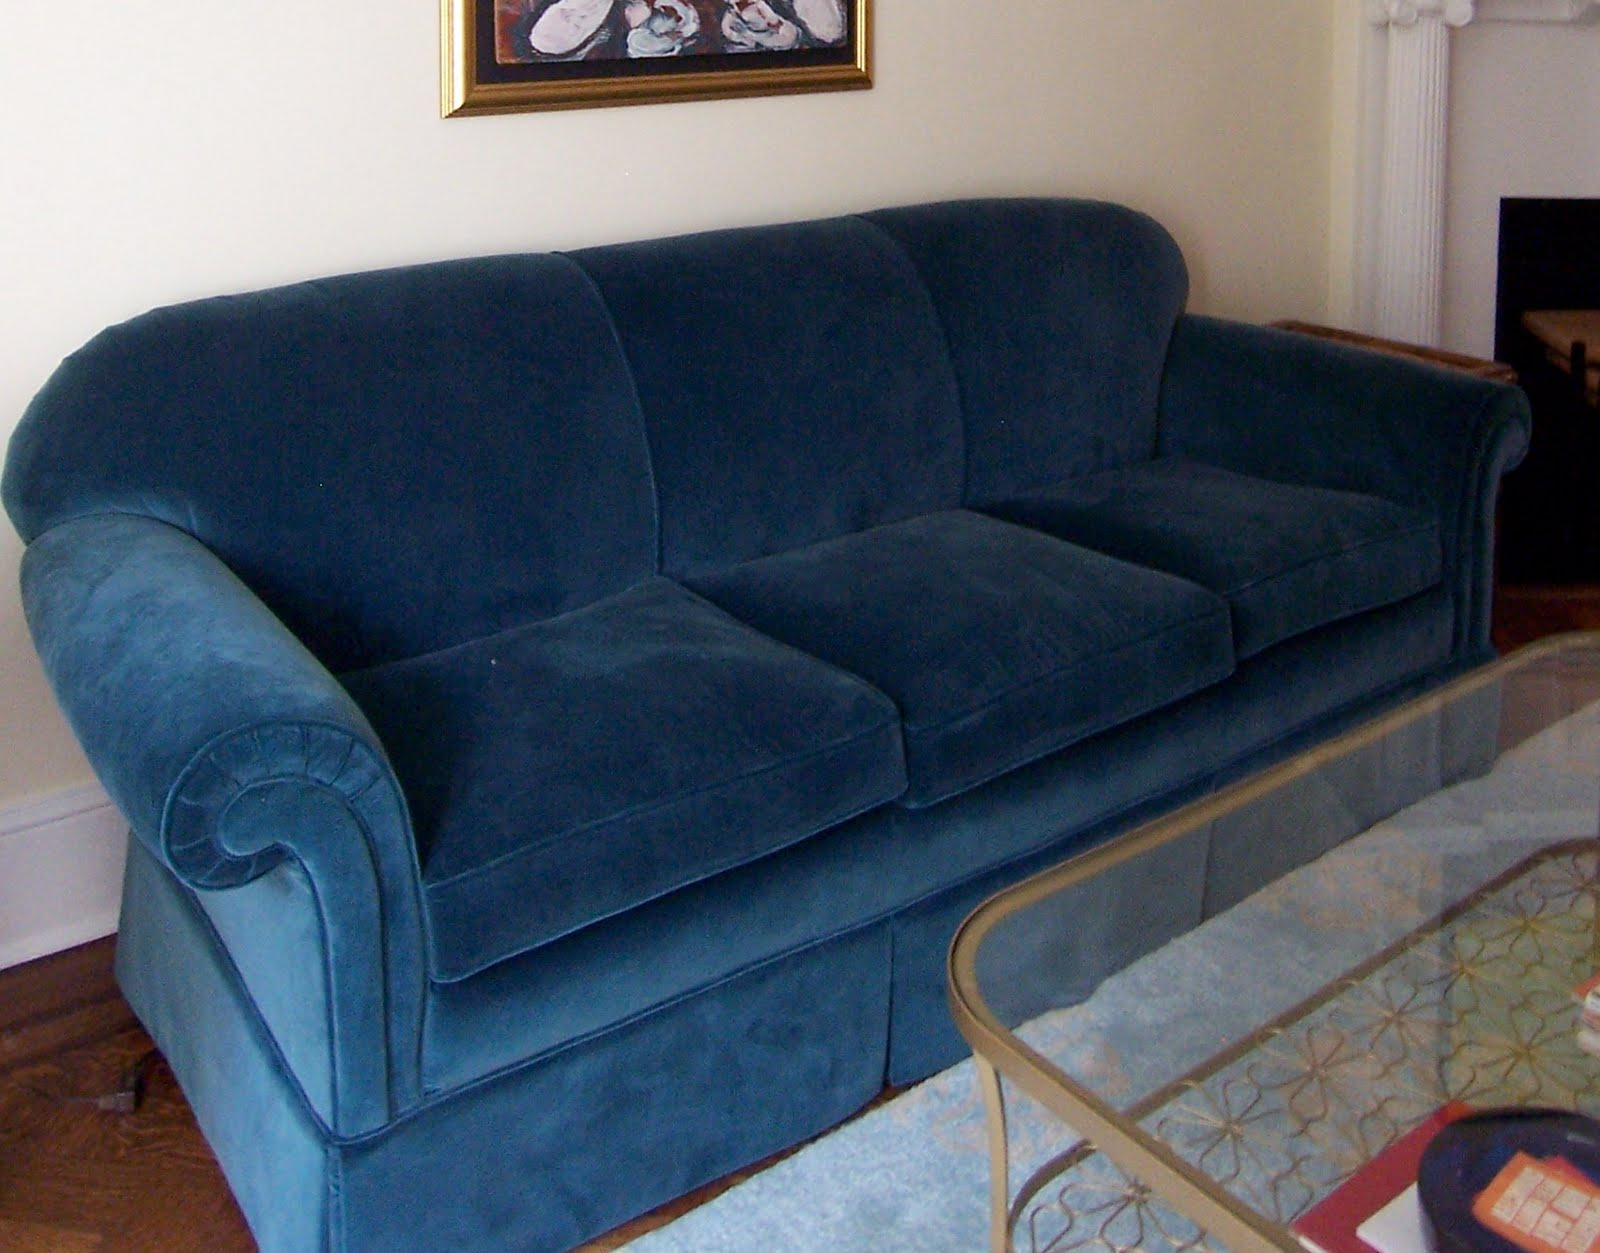 Reupholstering furniture is expensive bossy color annie elliott interior design Reupholster loveseat